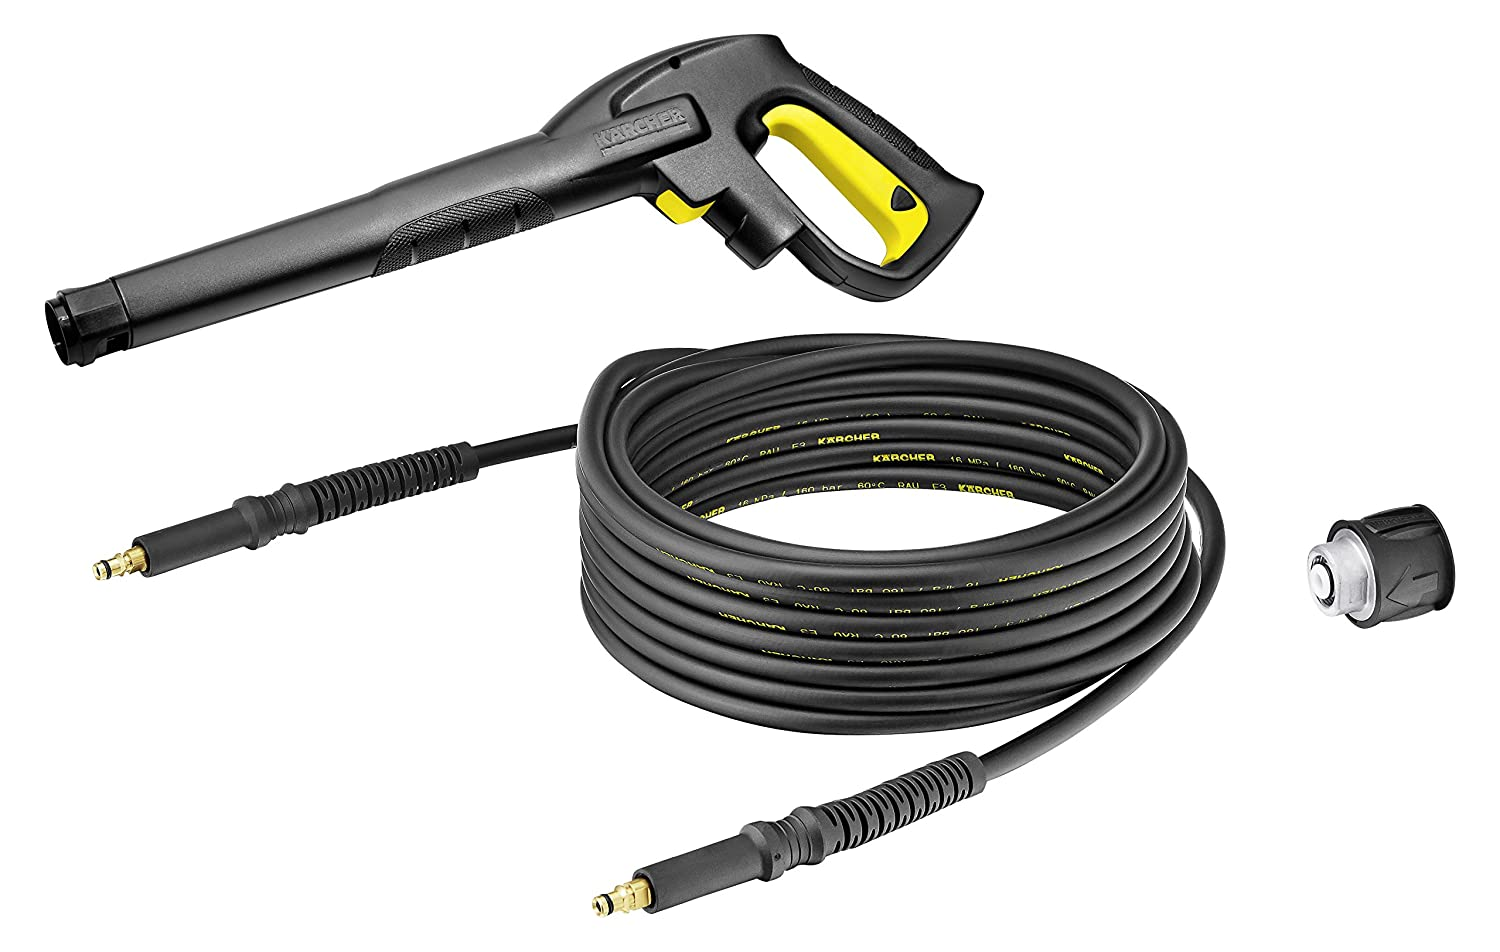 Karcher 2.643-910.0 Archer Trigger Gun and 25Ft Replacement Hose Kit, Black